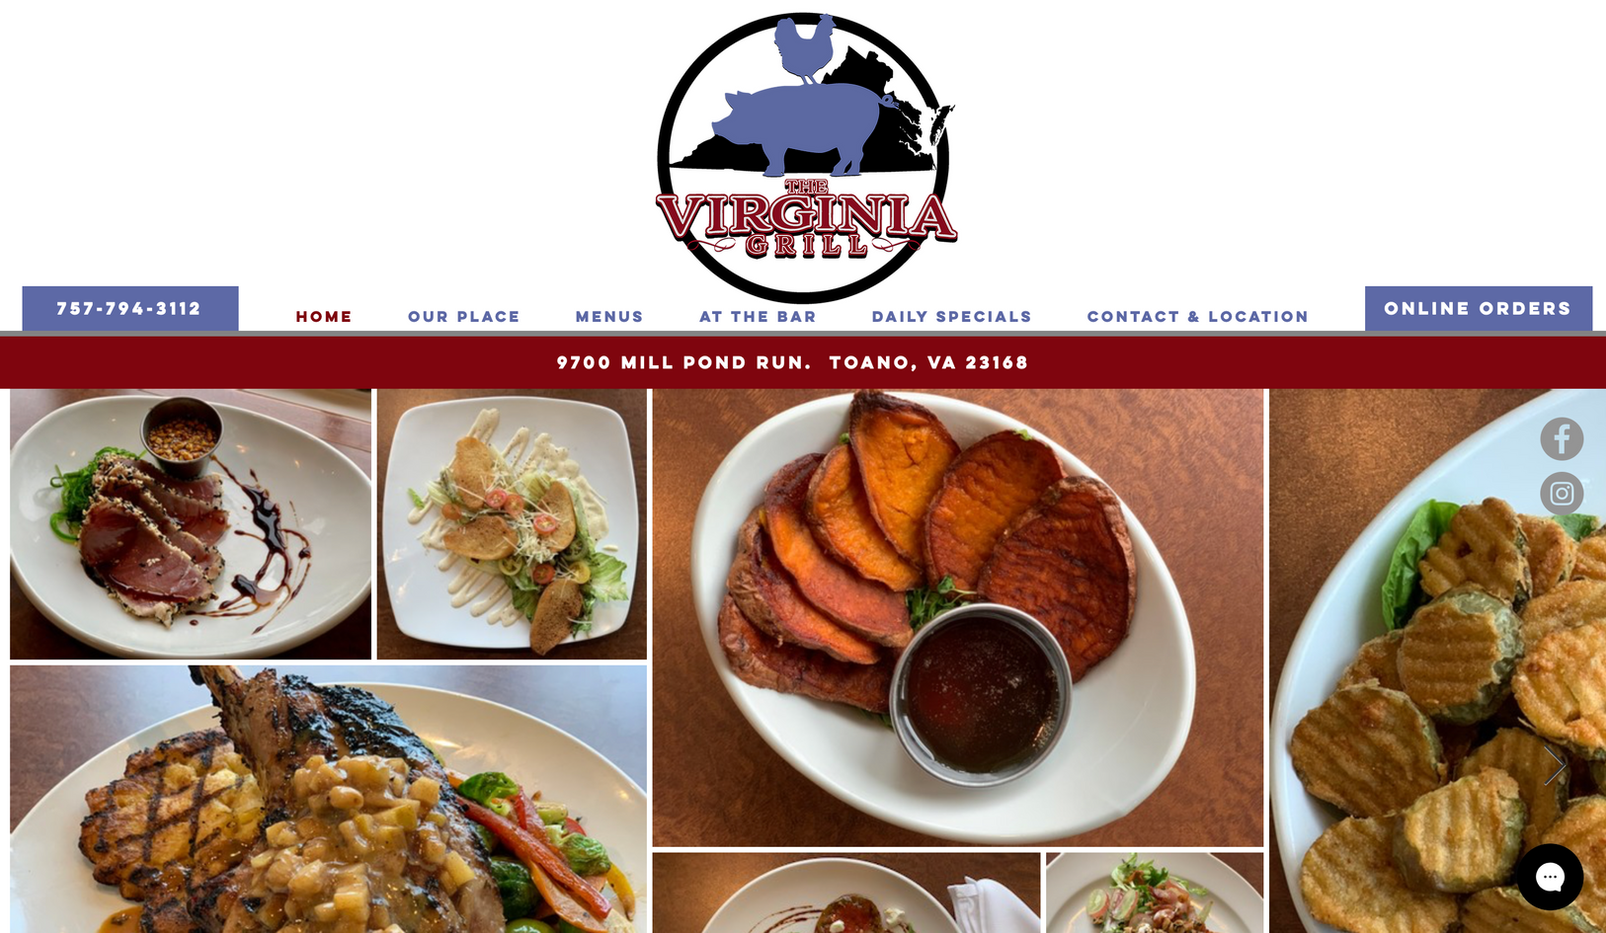 The Virginia Grill